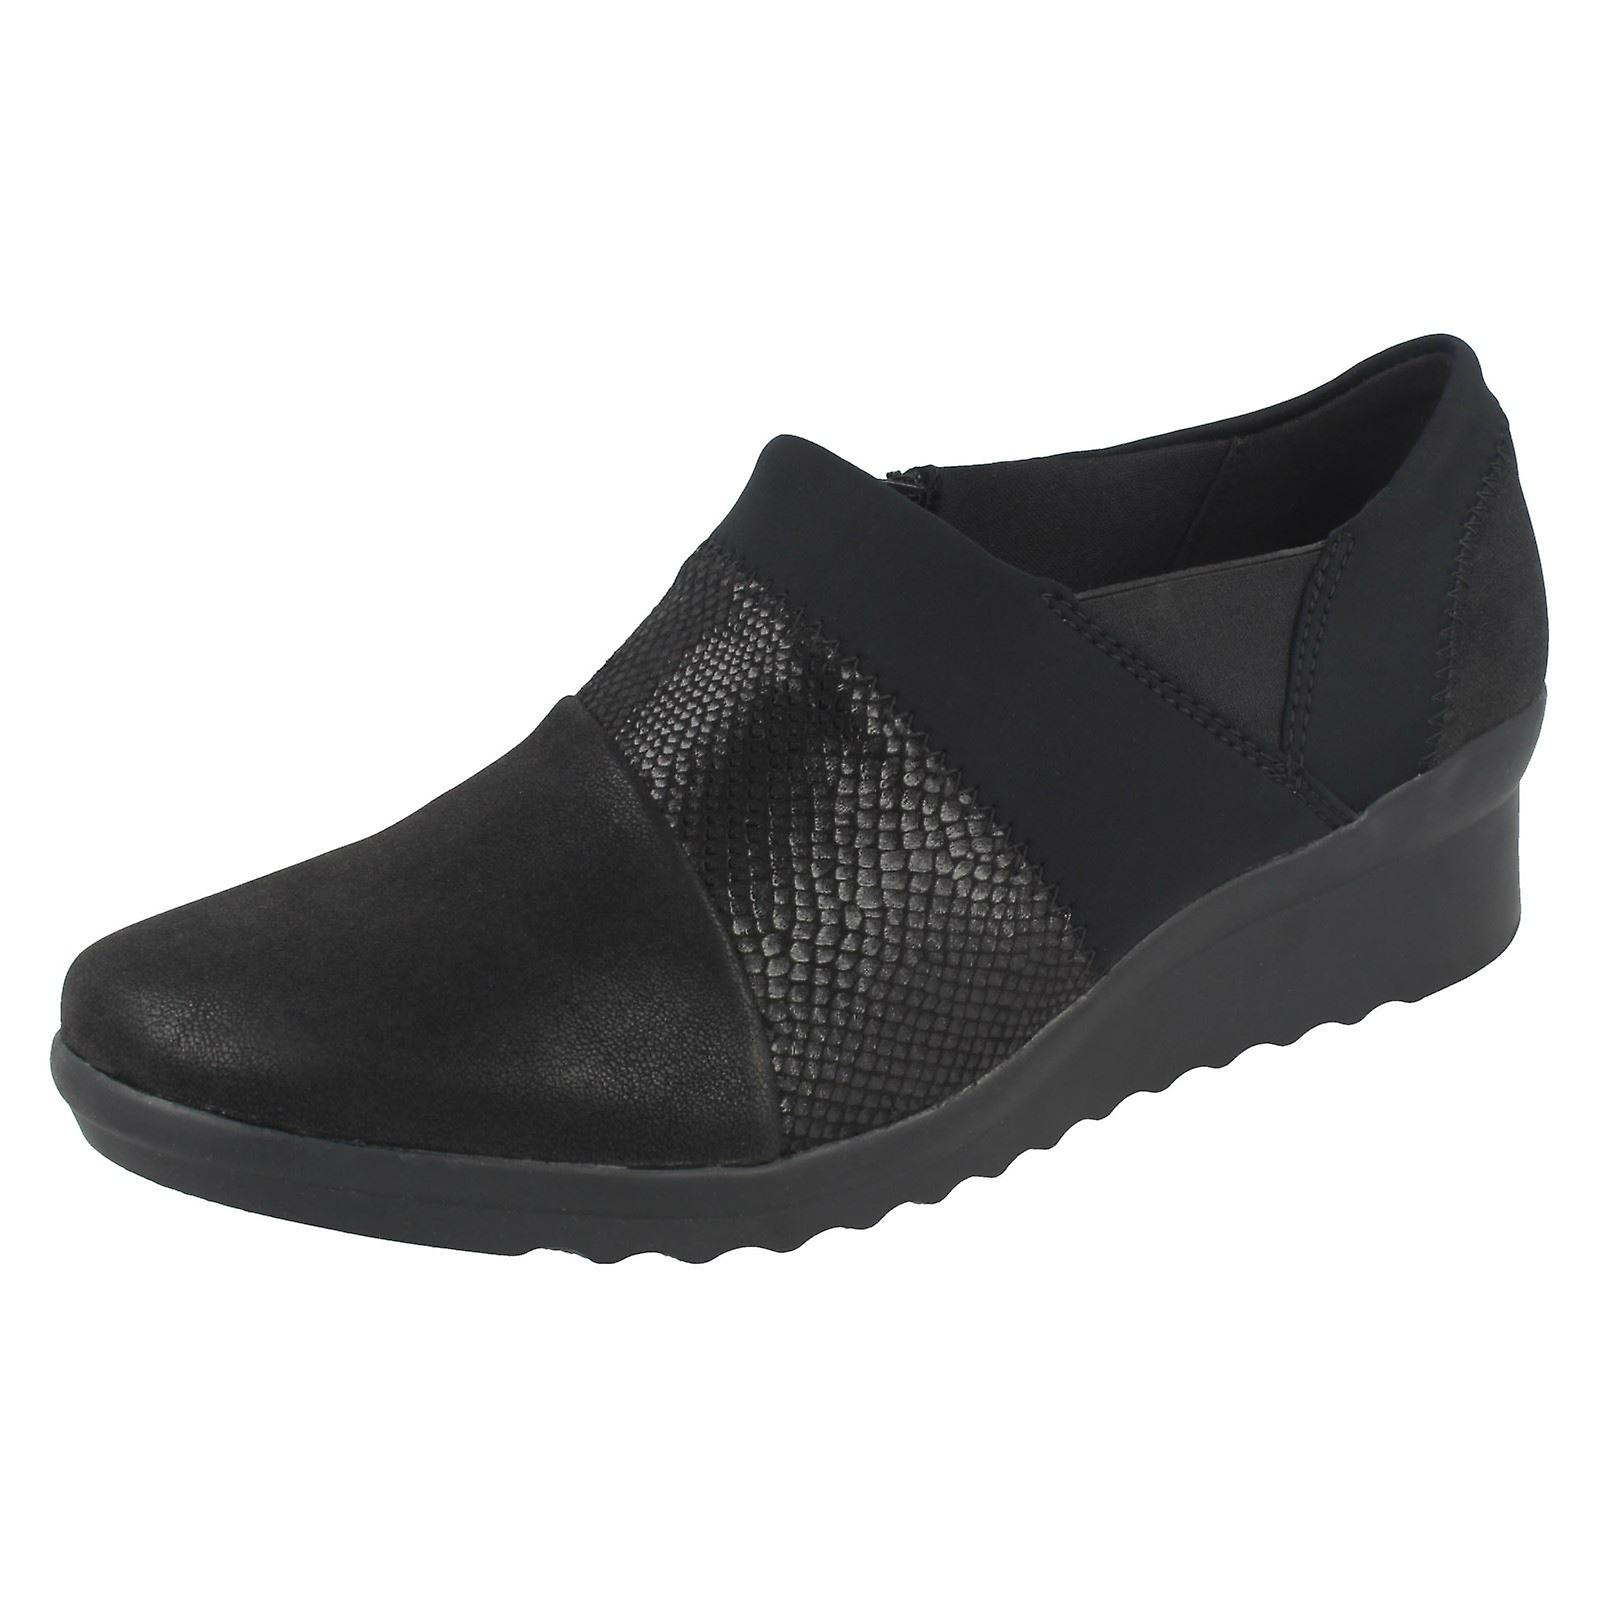 Ladies Cloudsteppers by Denali<big Clarks Wedge Heeled Shoes Caddell Denali<big by Ausver buy<Man's/Woman's b4a614